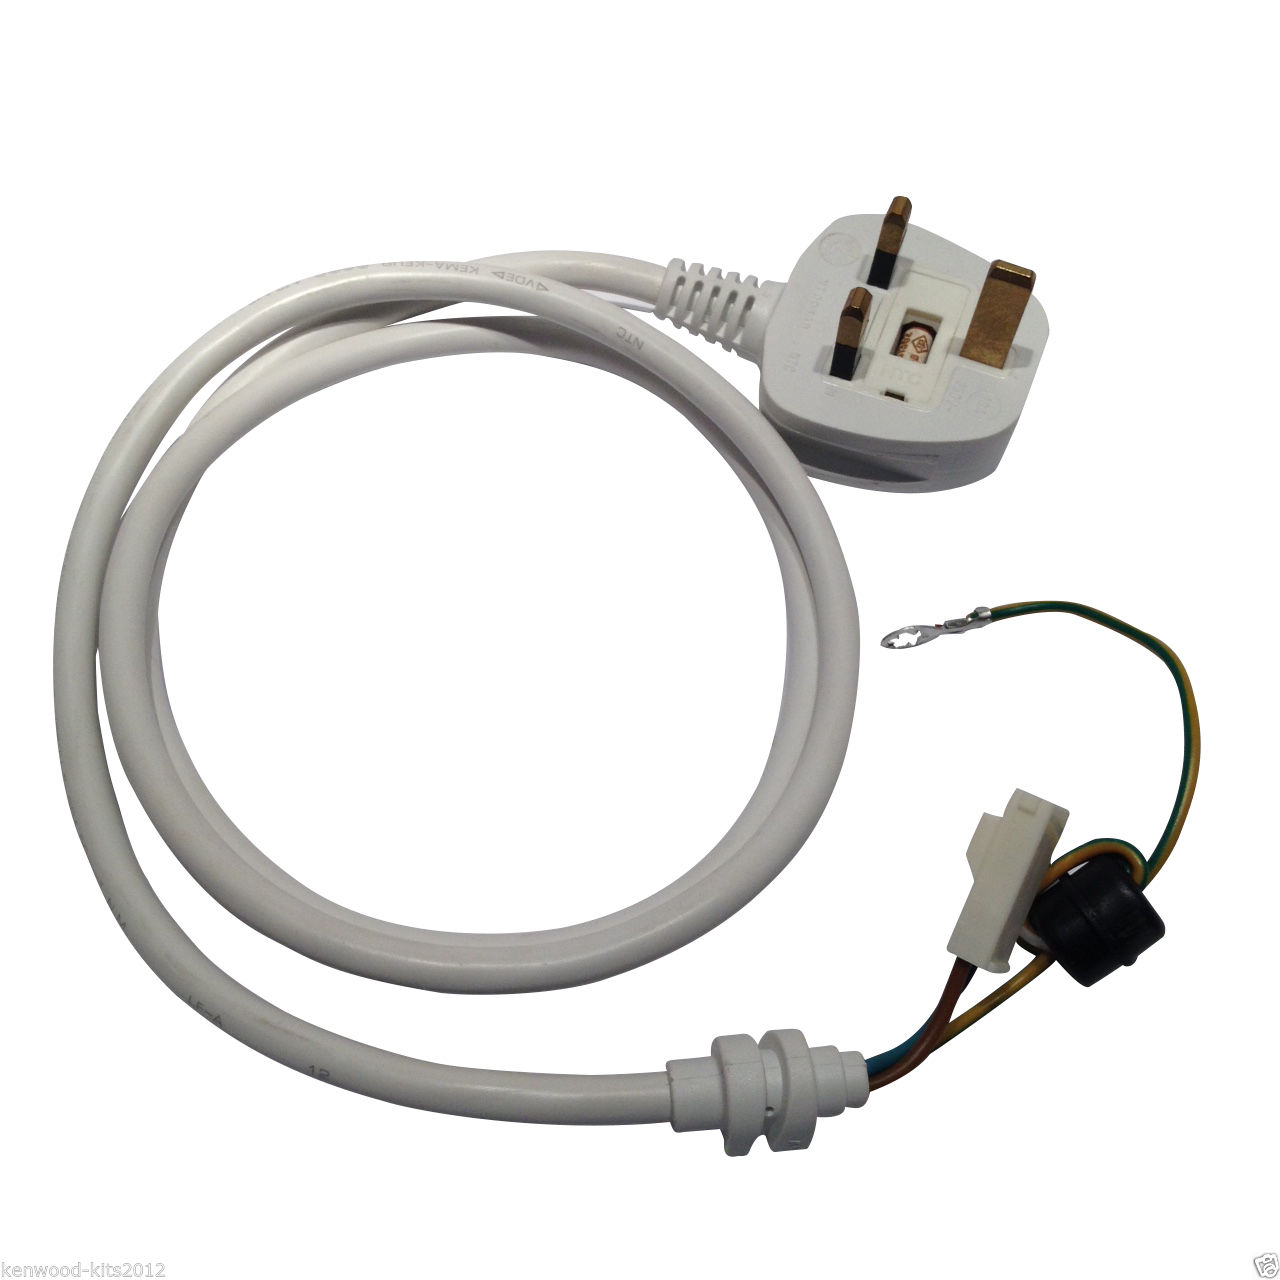 Kitchenaid Stand Mixer Power Cable Lead With Uk Plug